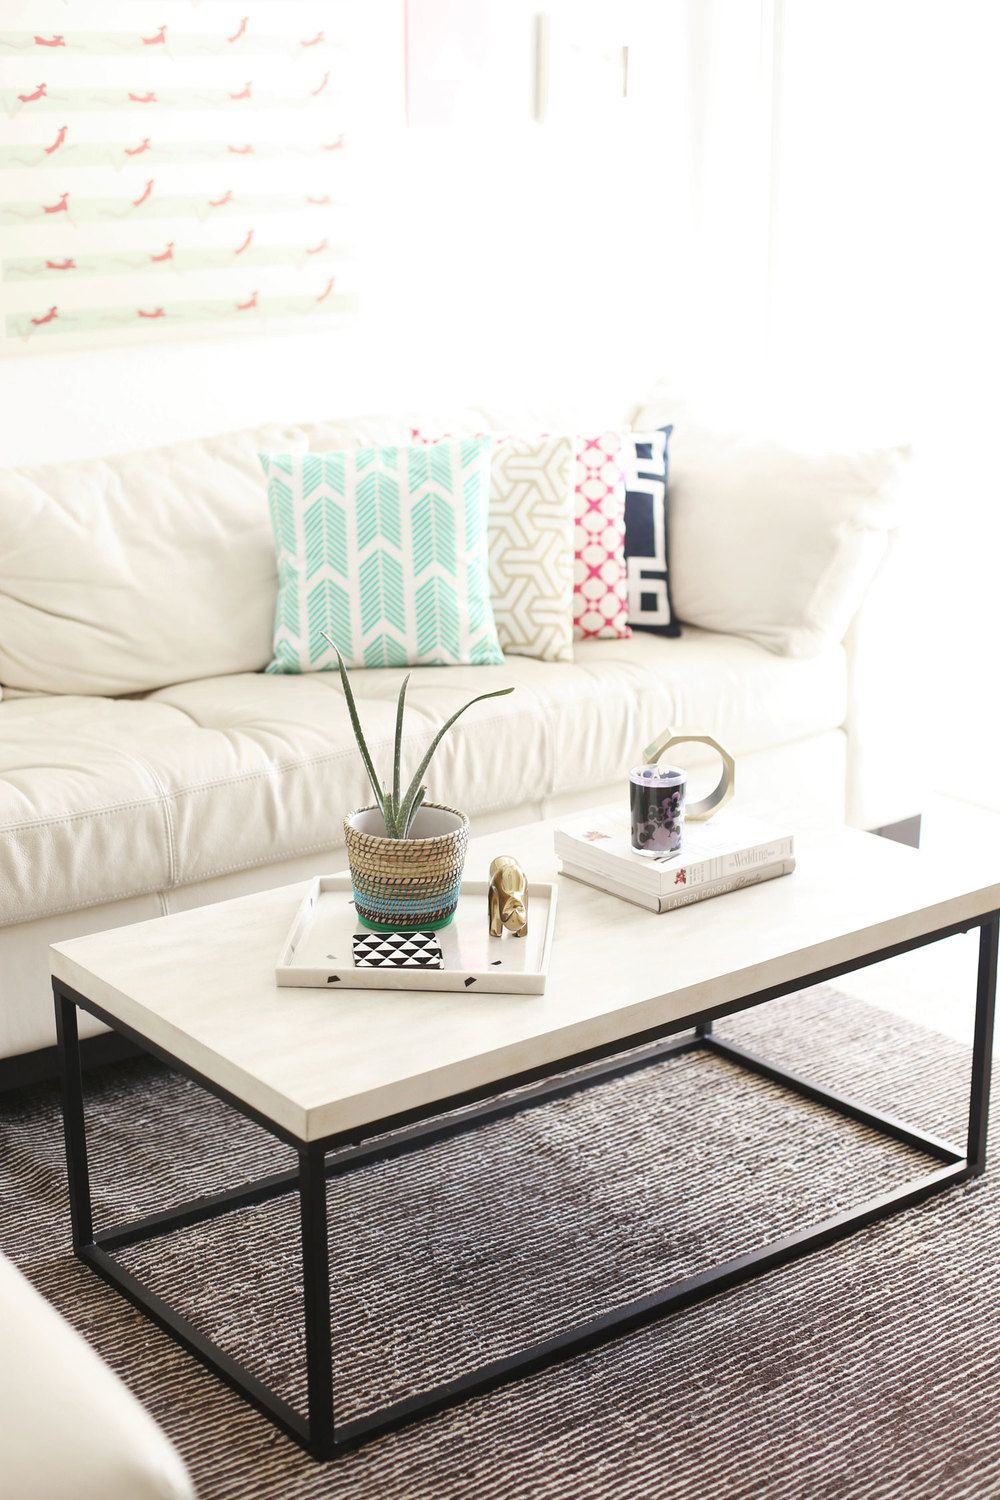 How To Style A Coffee Table Like An Interior Designer Via Kristimurphydiy